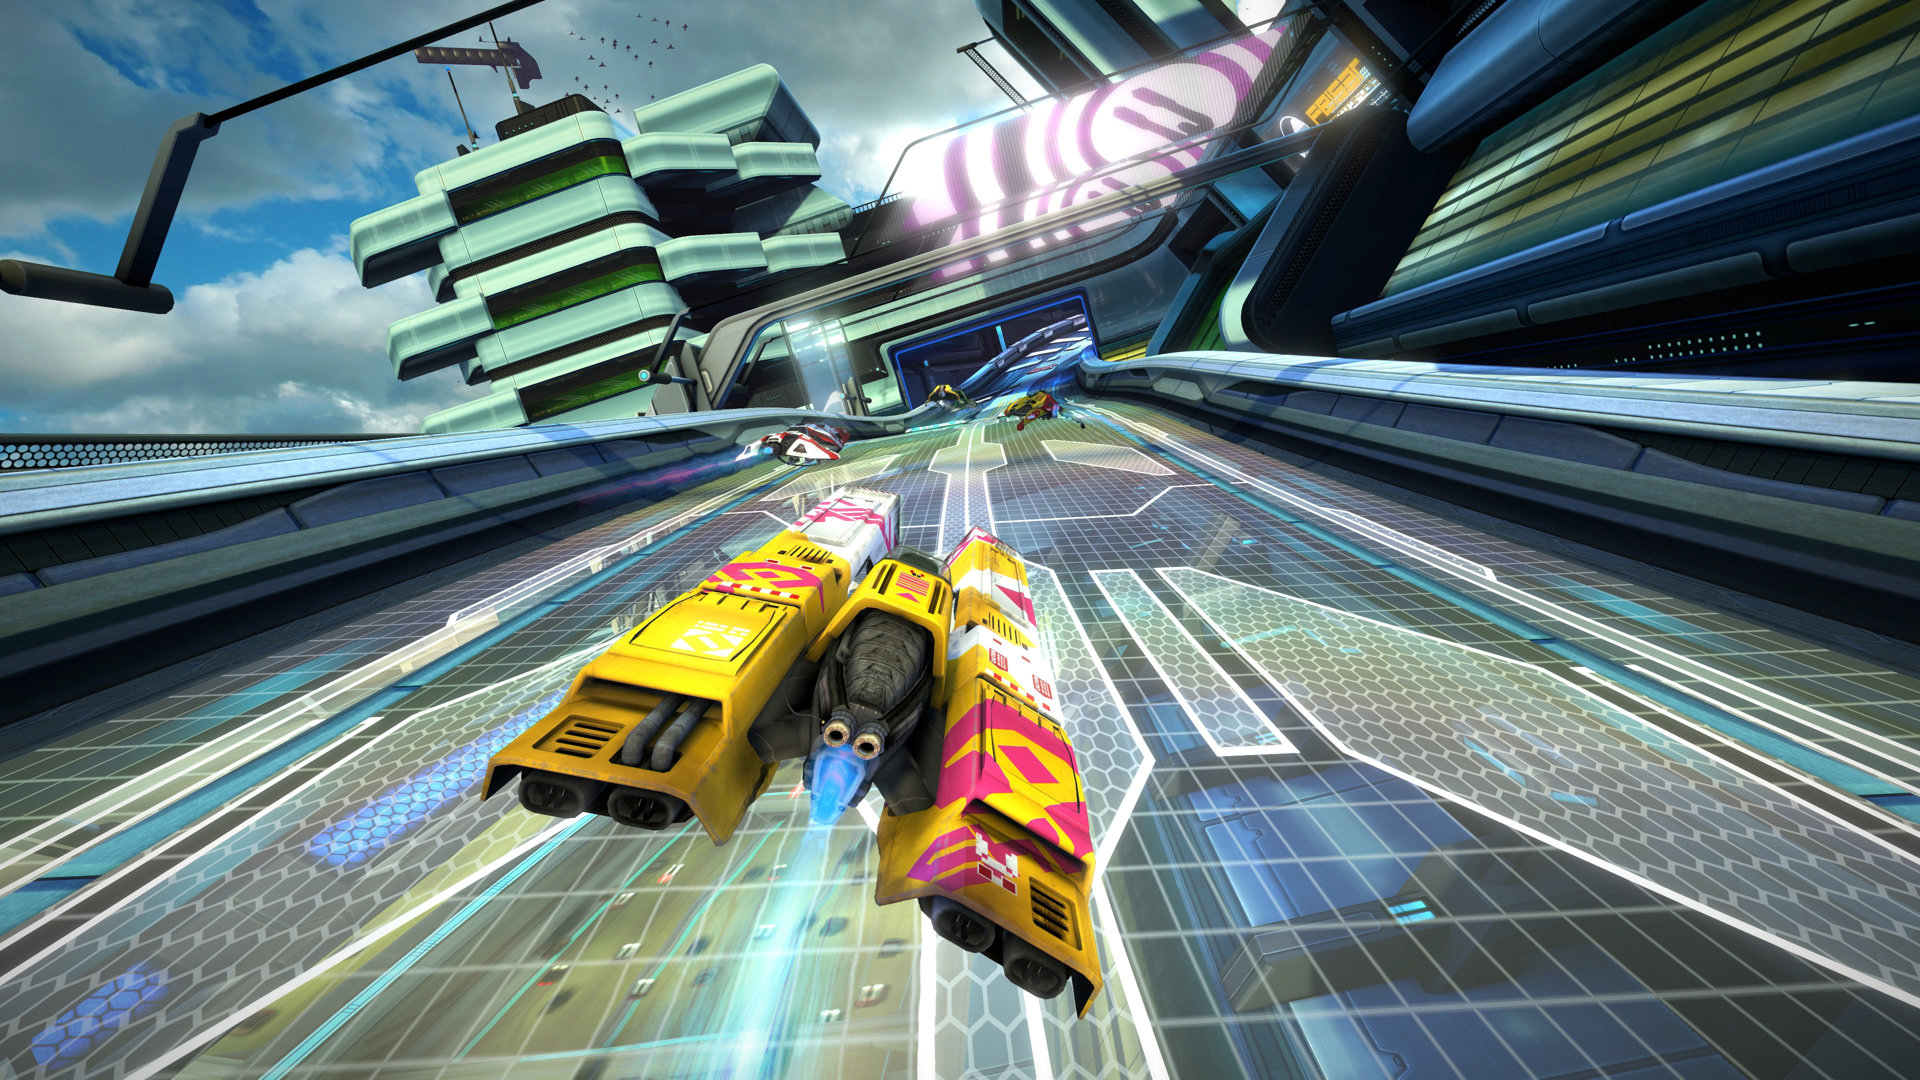 Review in Progress: WipEout Omega Collection